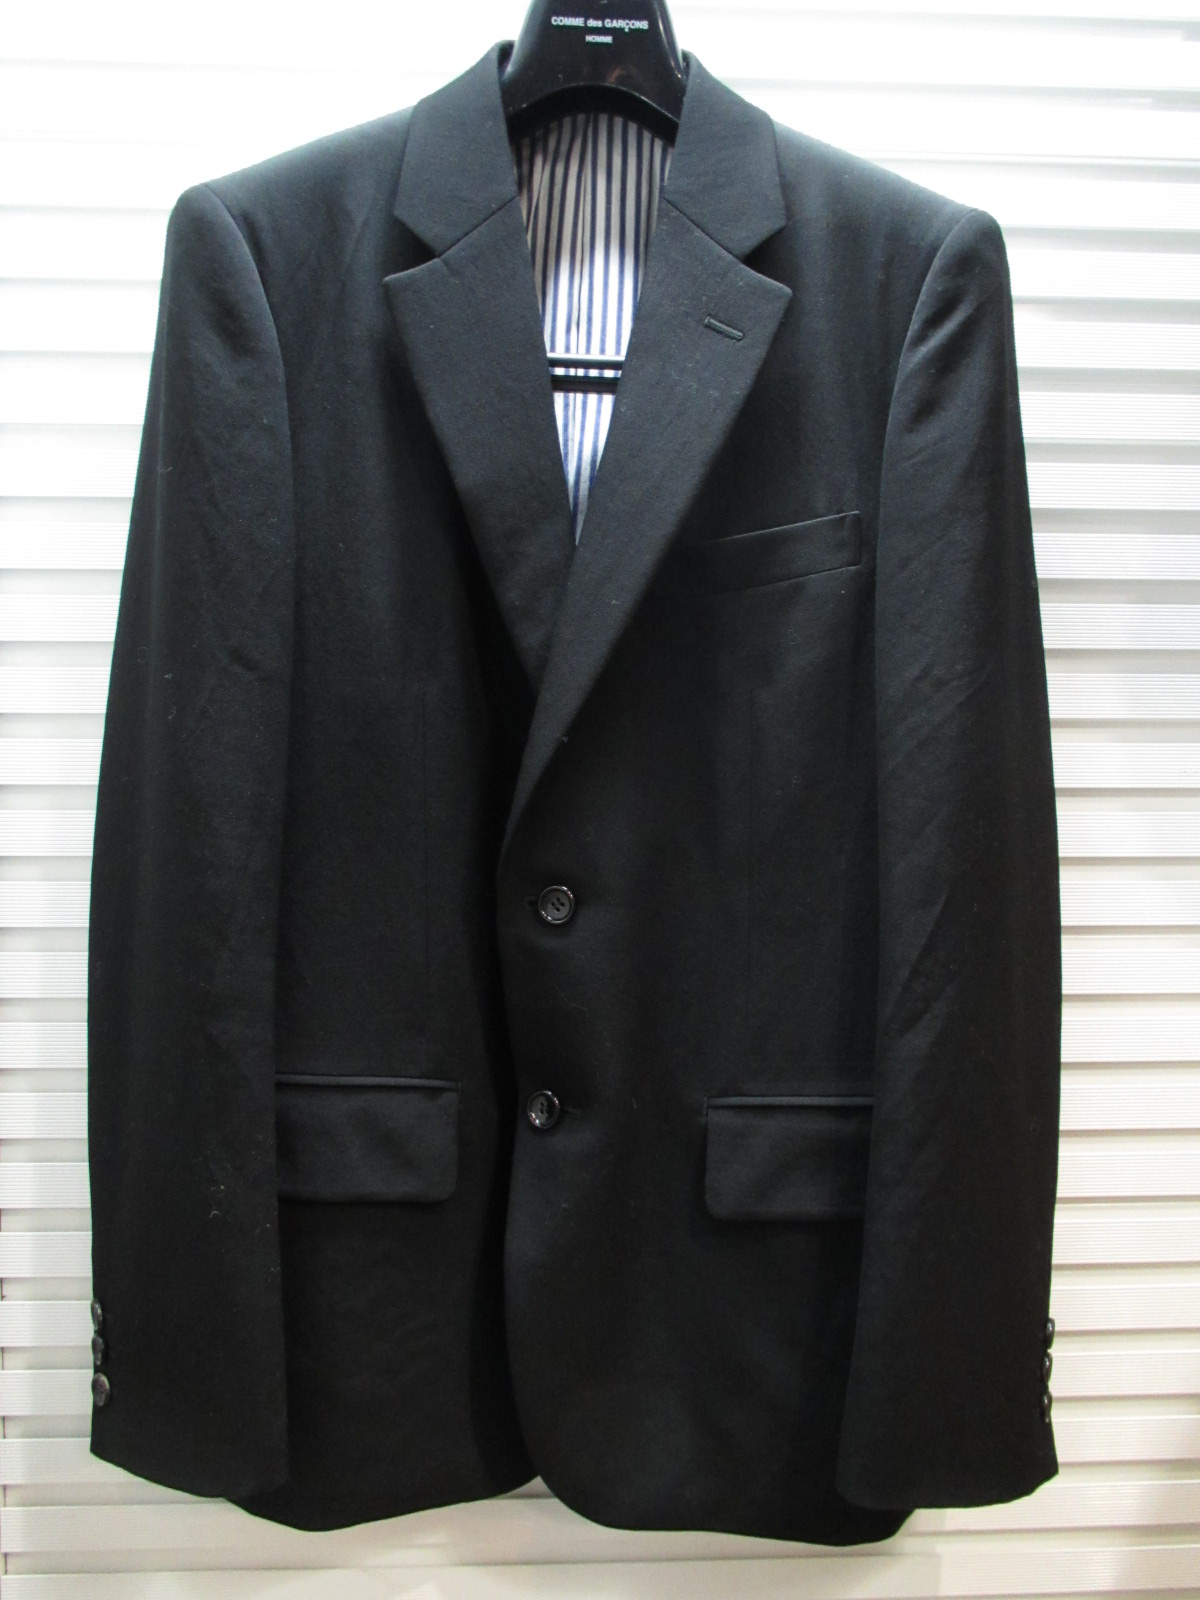 COMME des GARCONS HOMME 2B JKT サンステップ リサイクル ブランド衣料